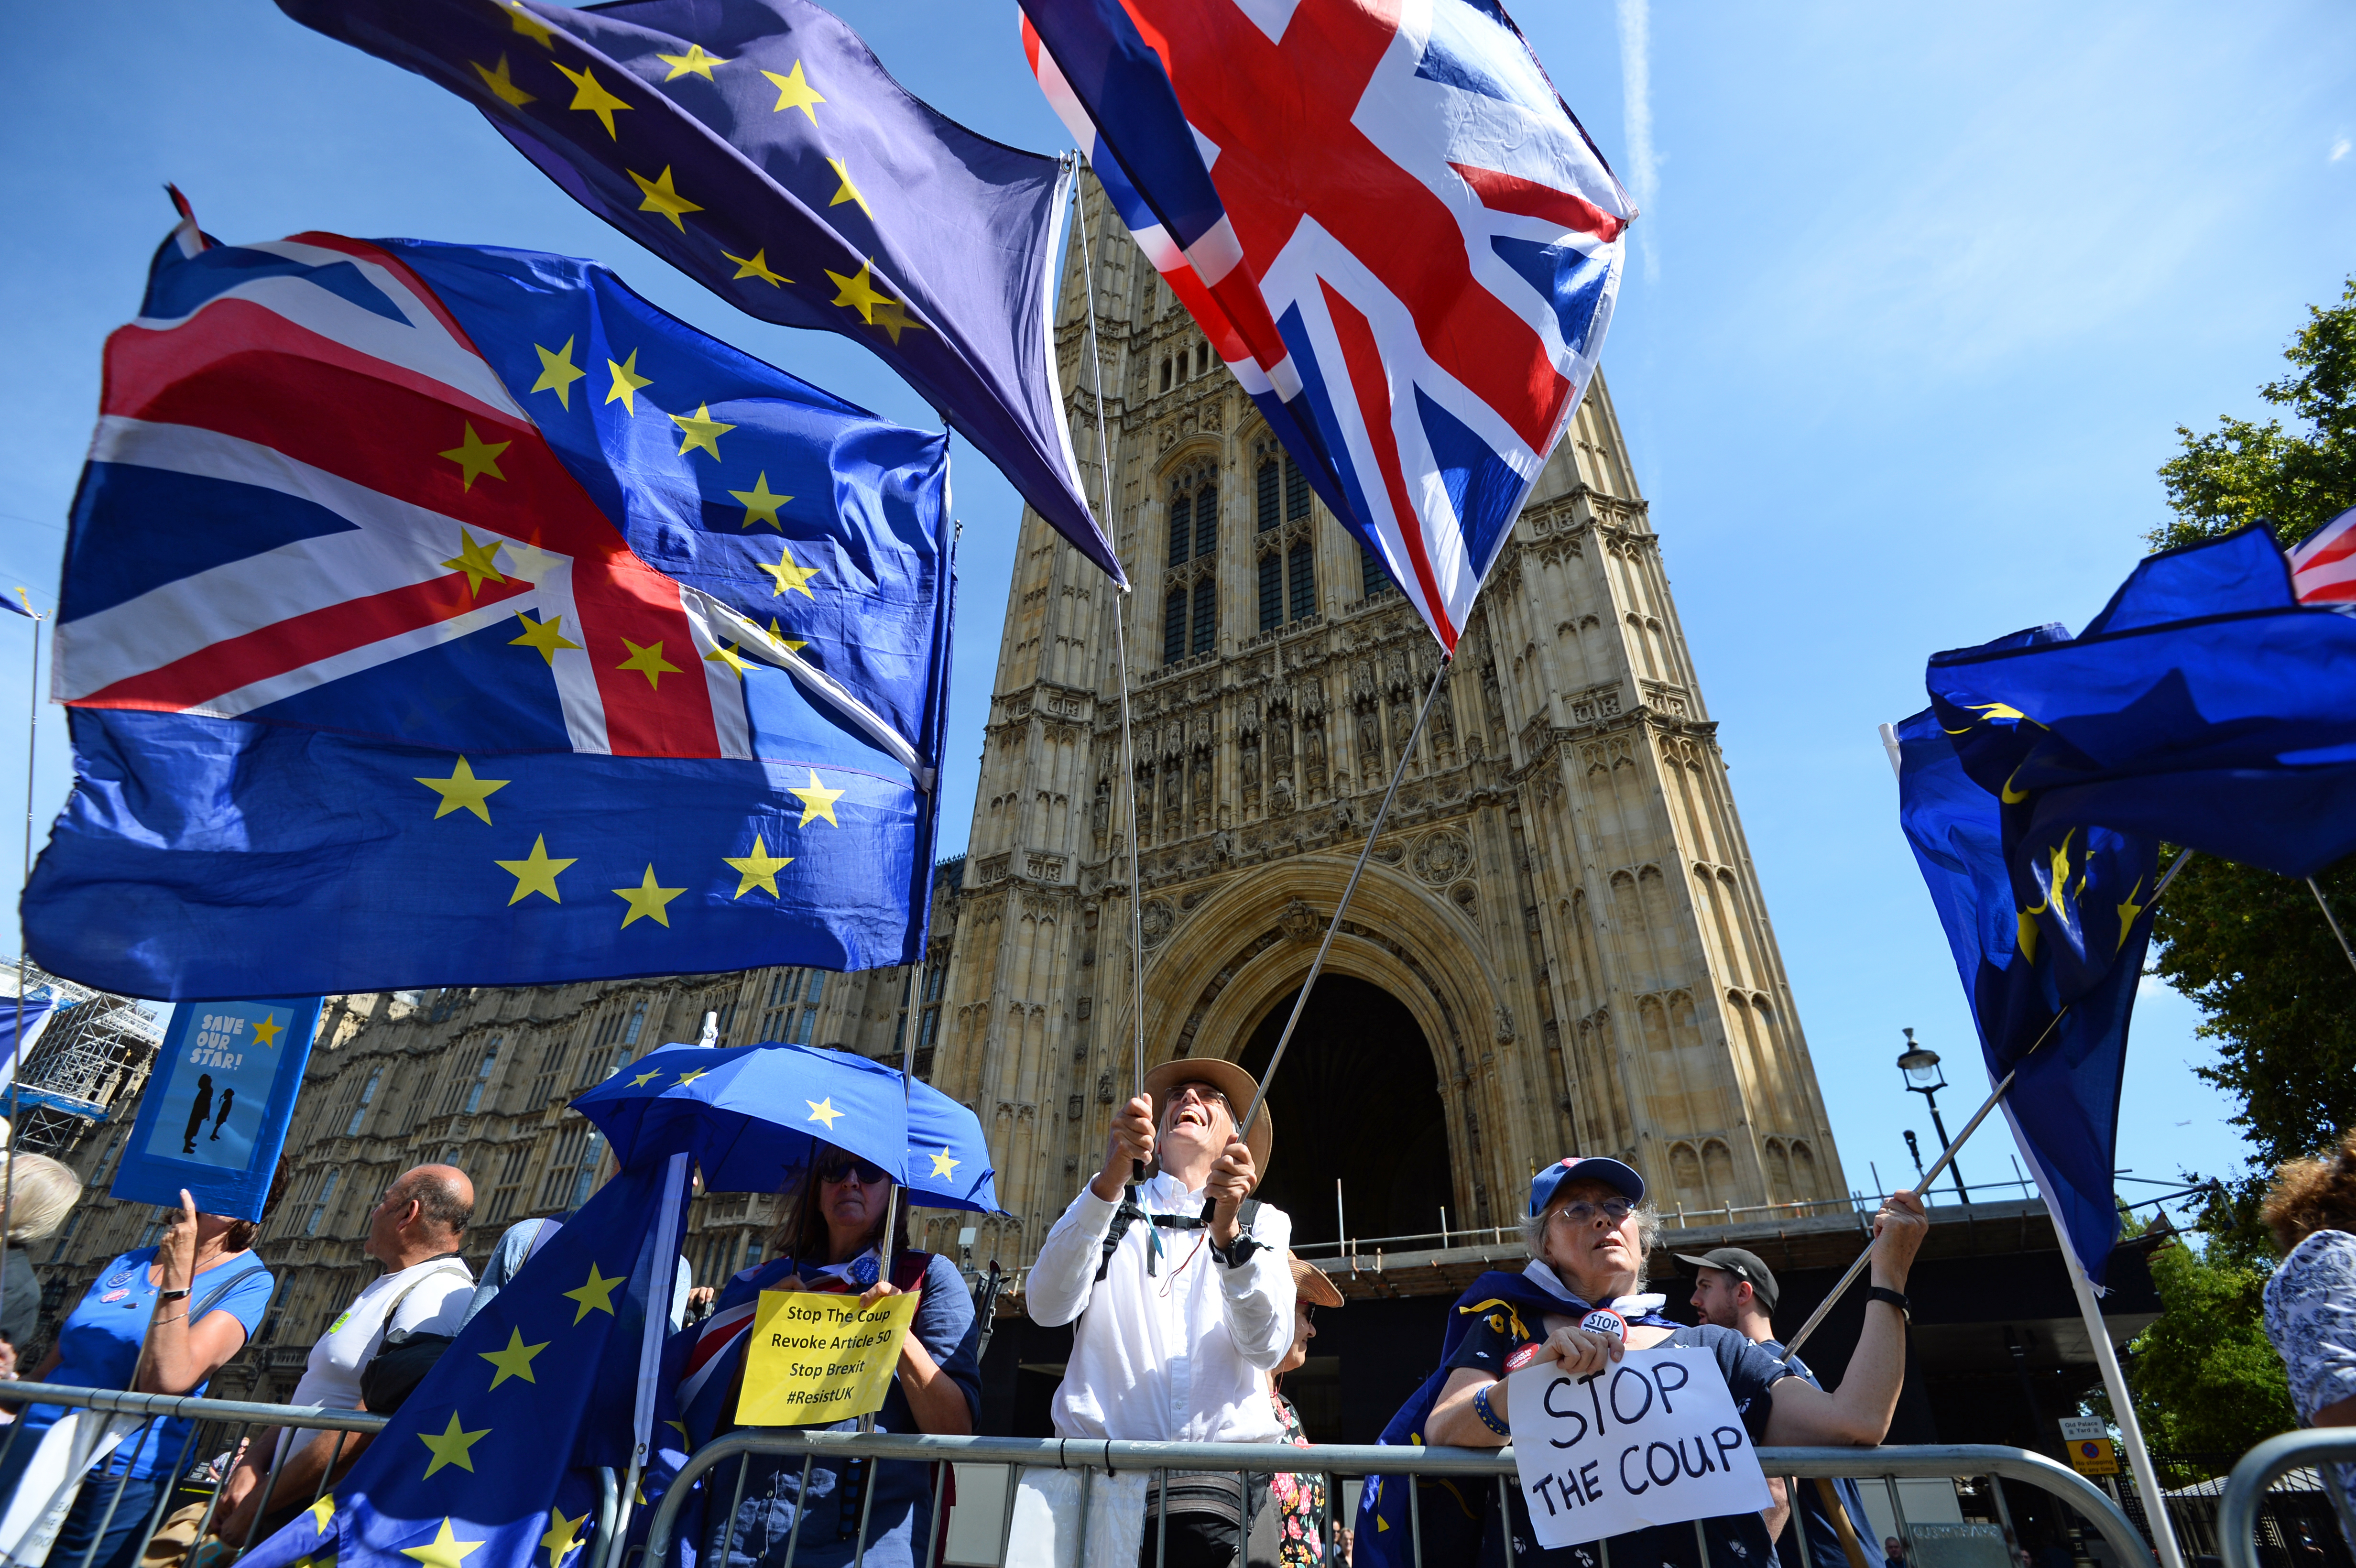 Brexit protesters in Westminster, London.